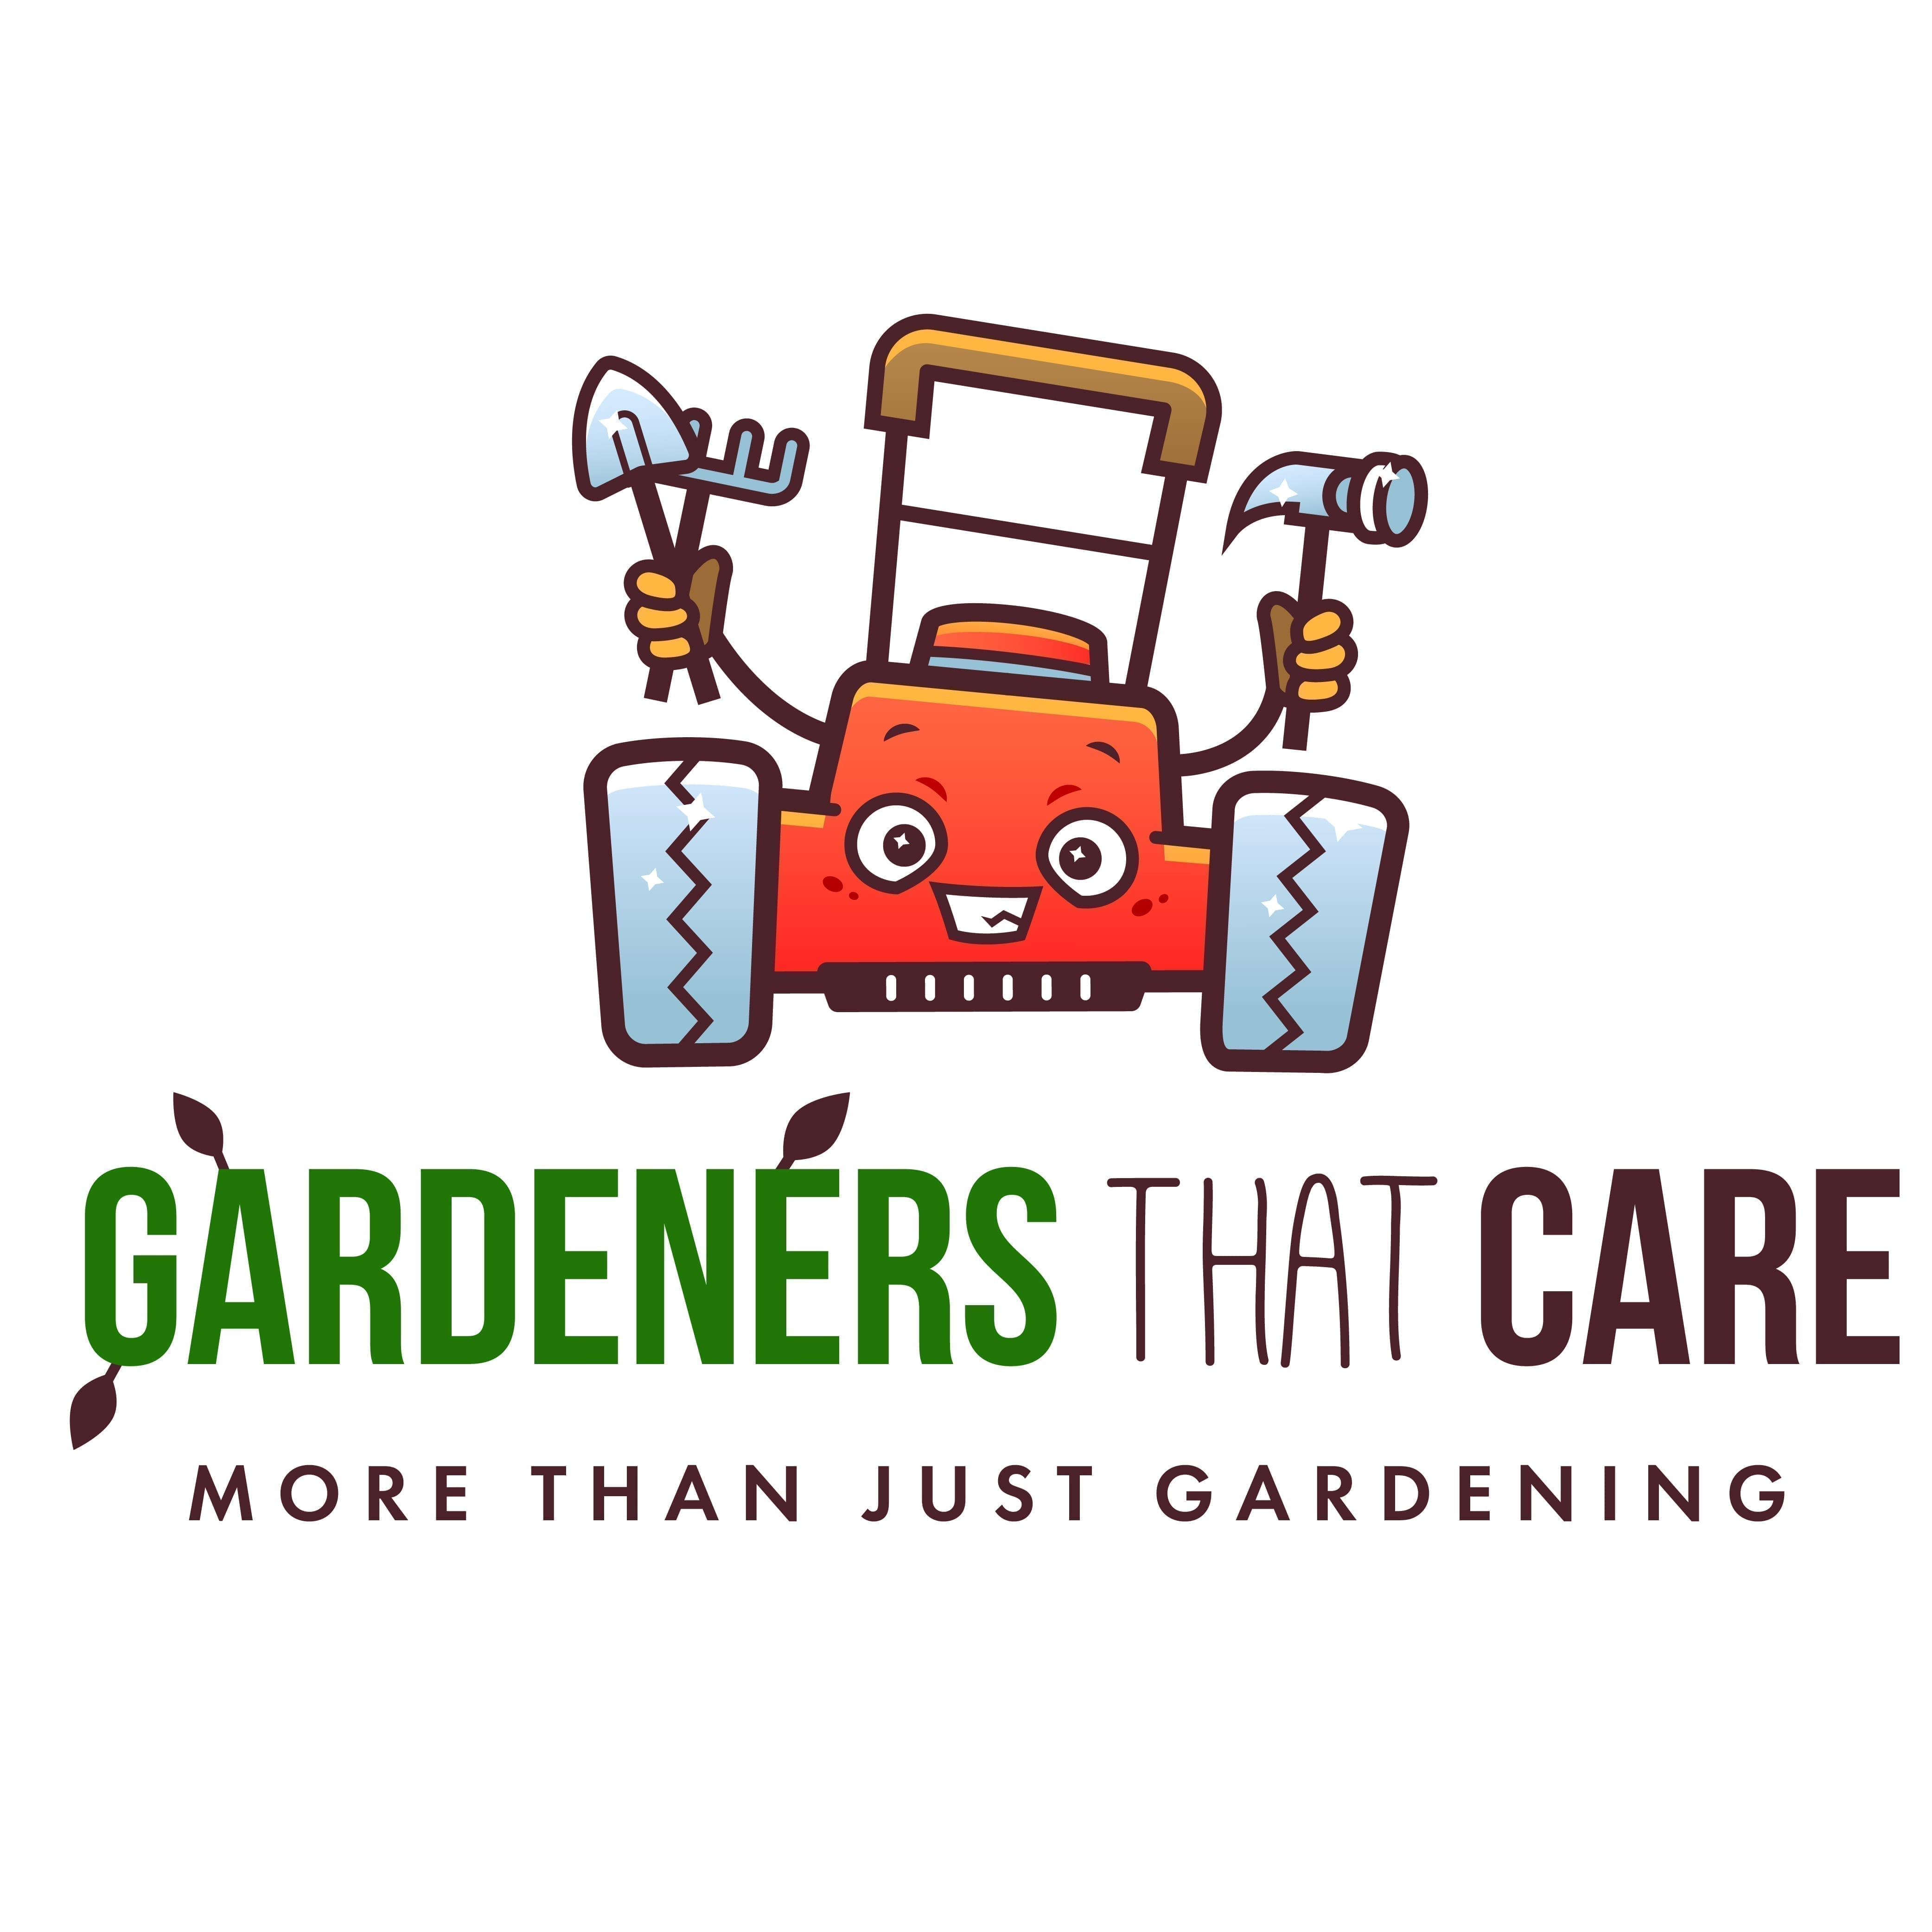 Gardeners that Care